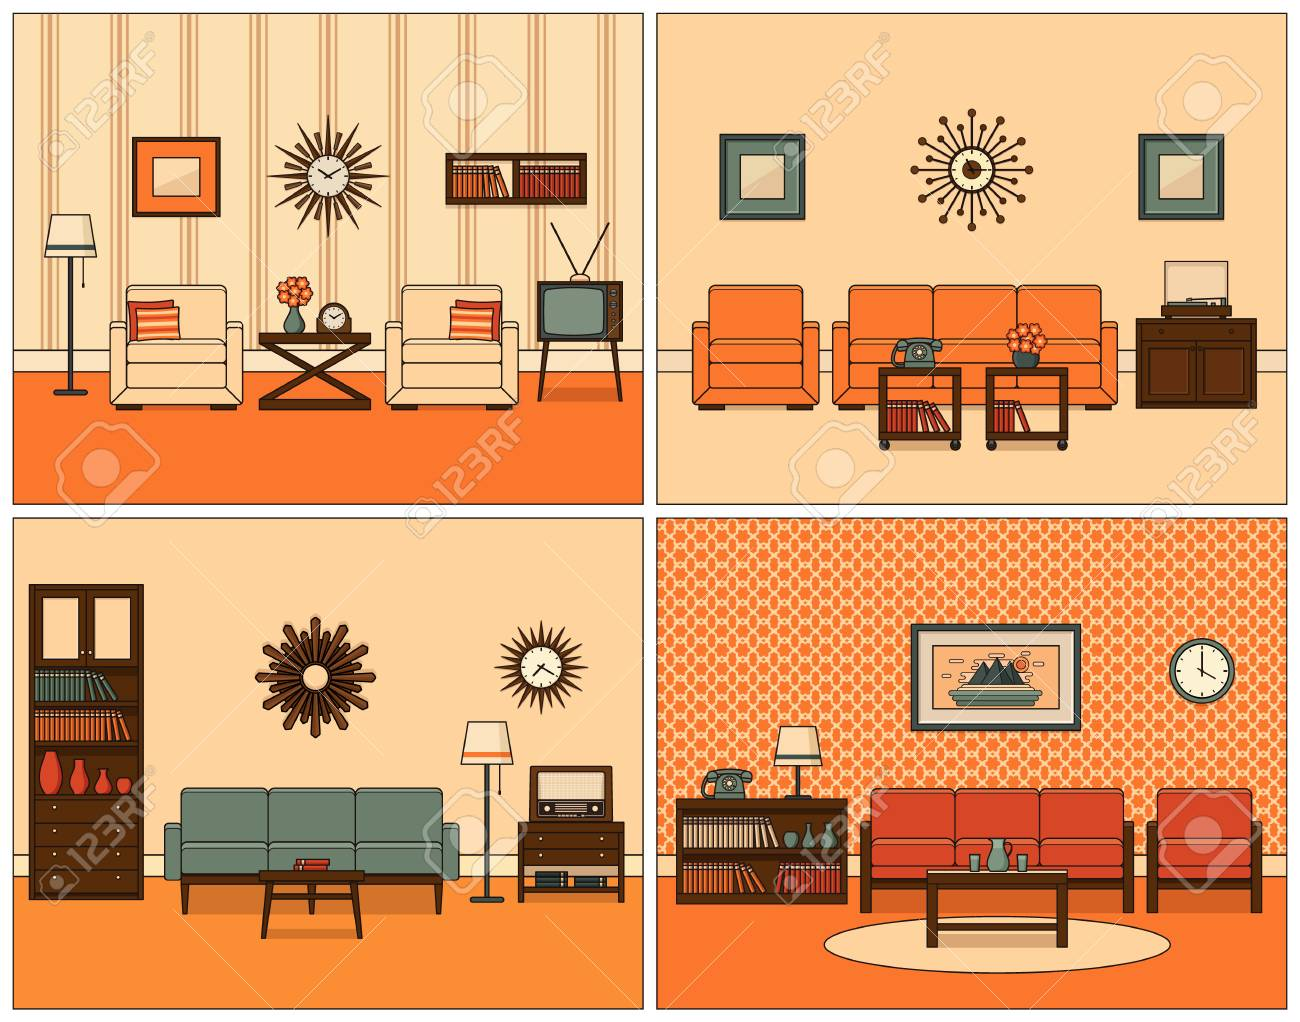 Retro Room Interior Vector Linear Living Room Set Flat Design